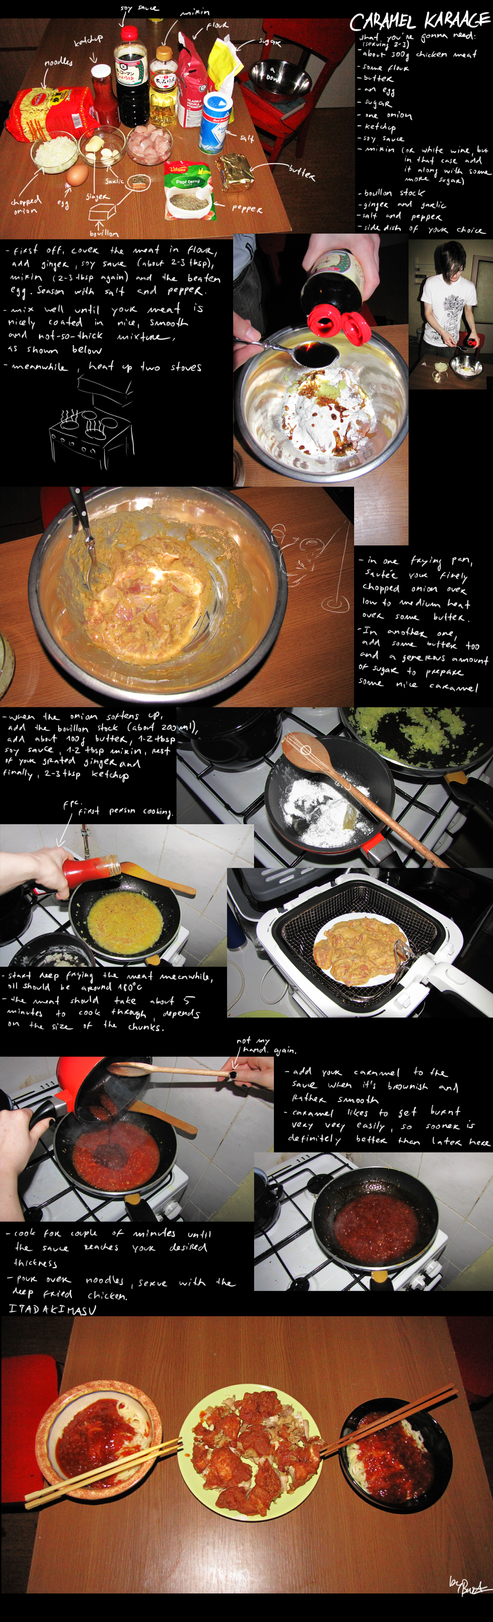 How to make caramel karaage by BrocX